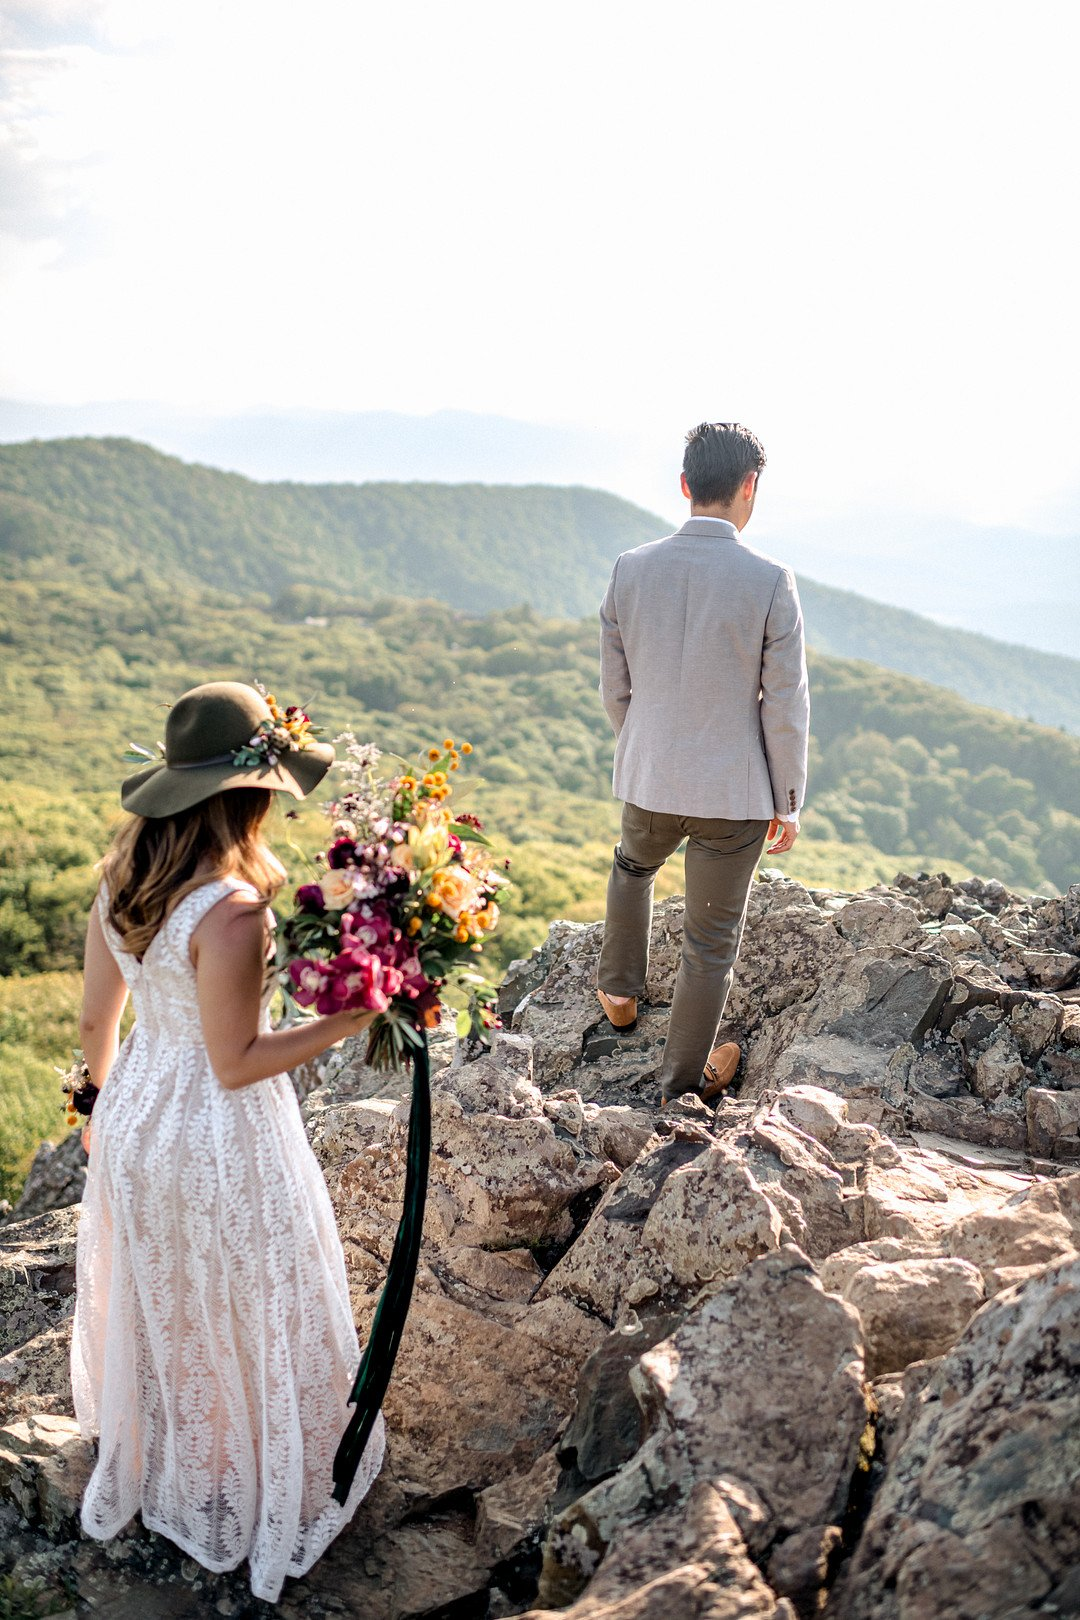 Boho Mountain Elopement in Shenandoah National Park_1001 Angles Photography_Shenandoah National Park Adventure Elopement-94_low